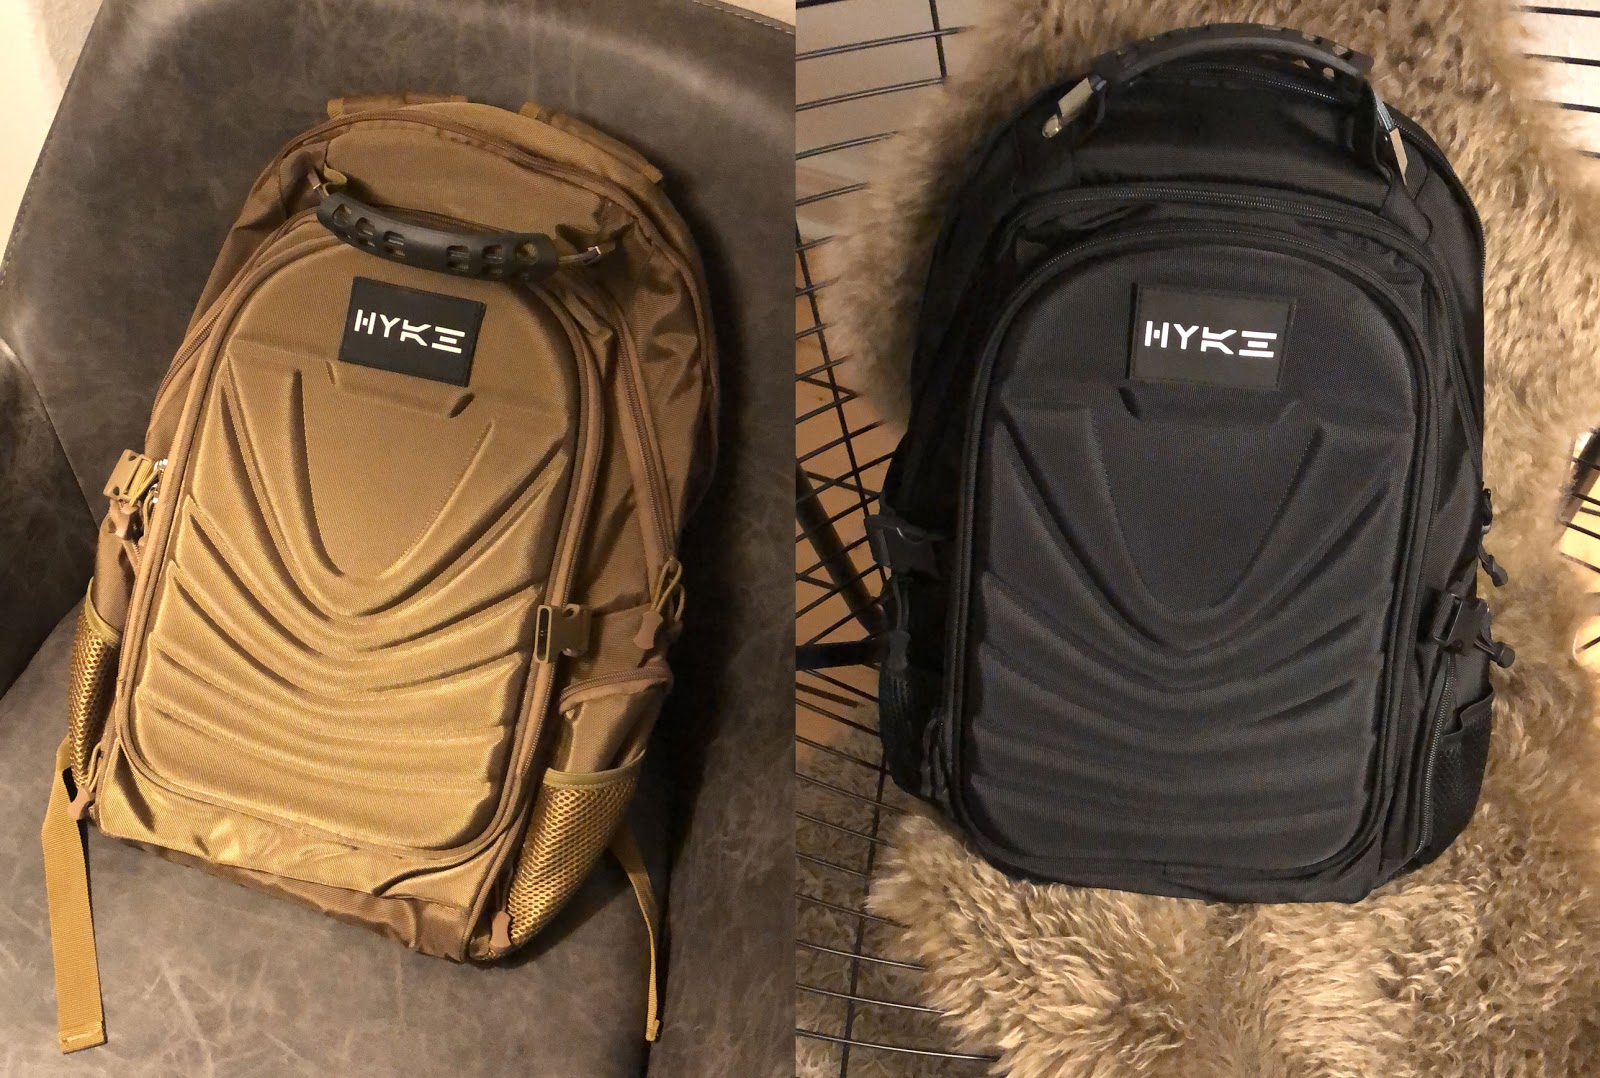 Picture showing backpacks with logos on them